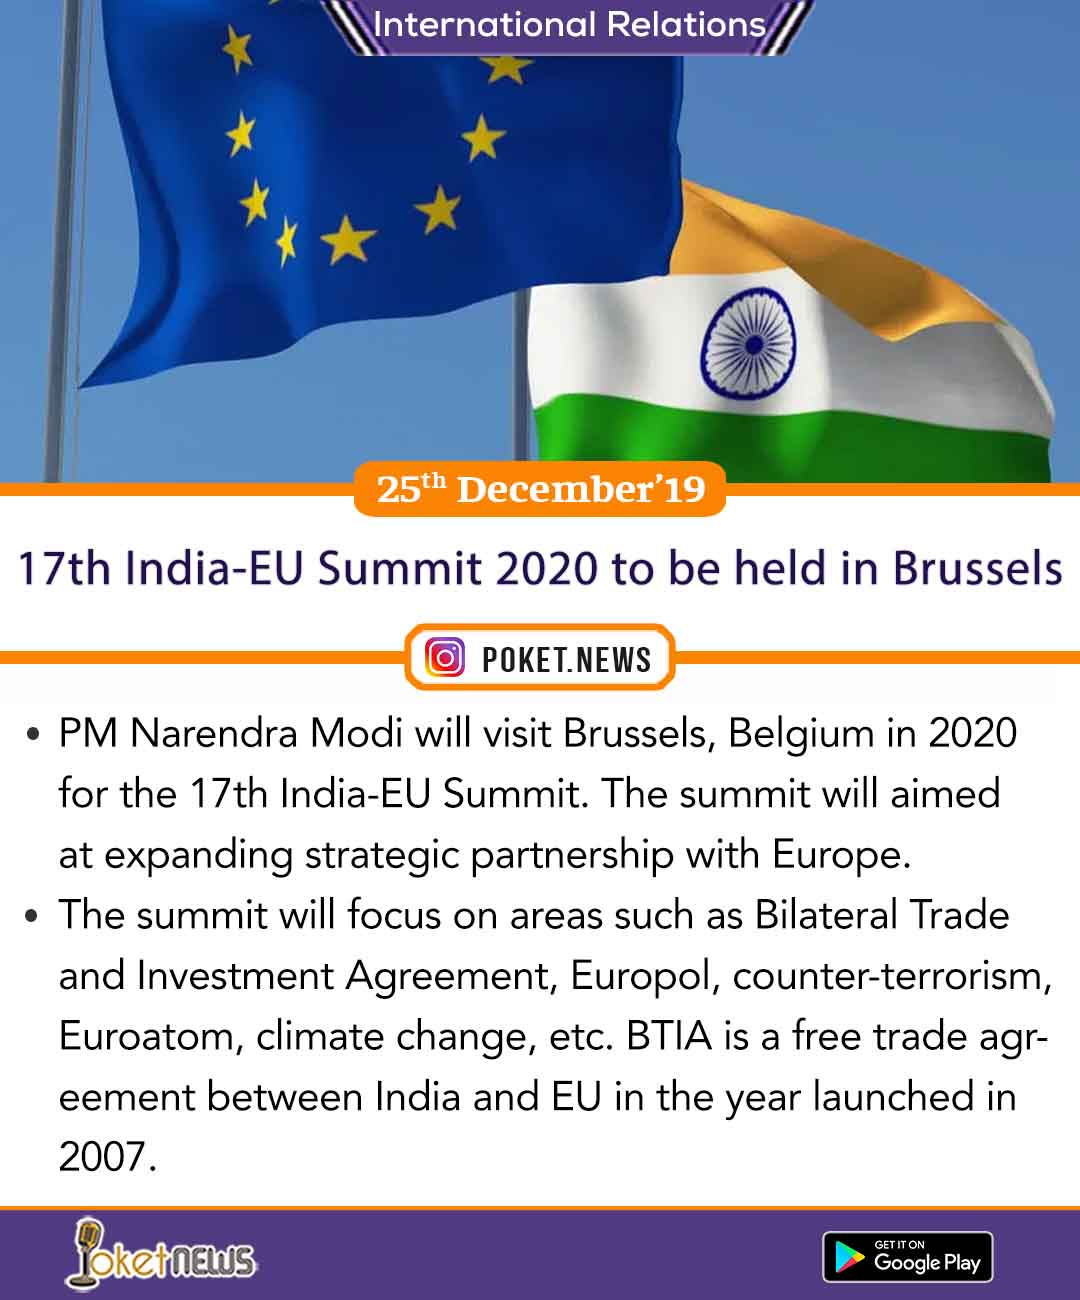 india-eu bilateral trade and investment agreement free